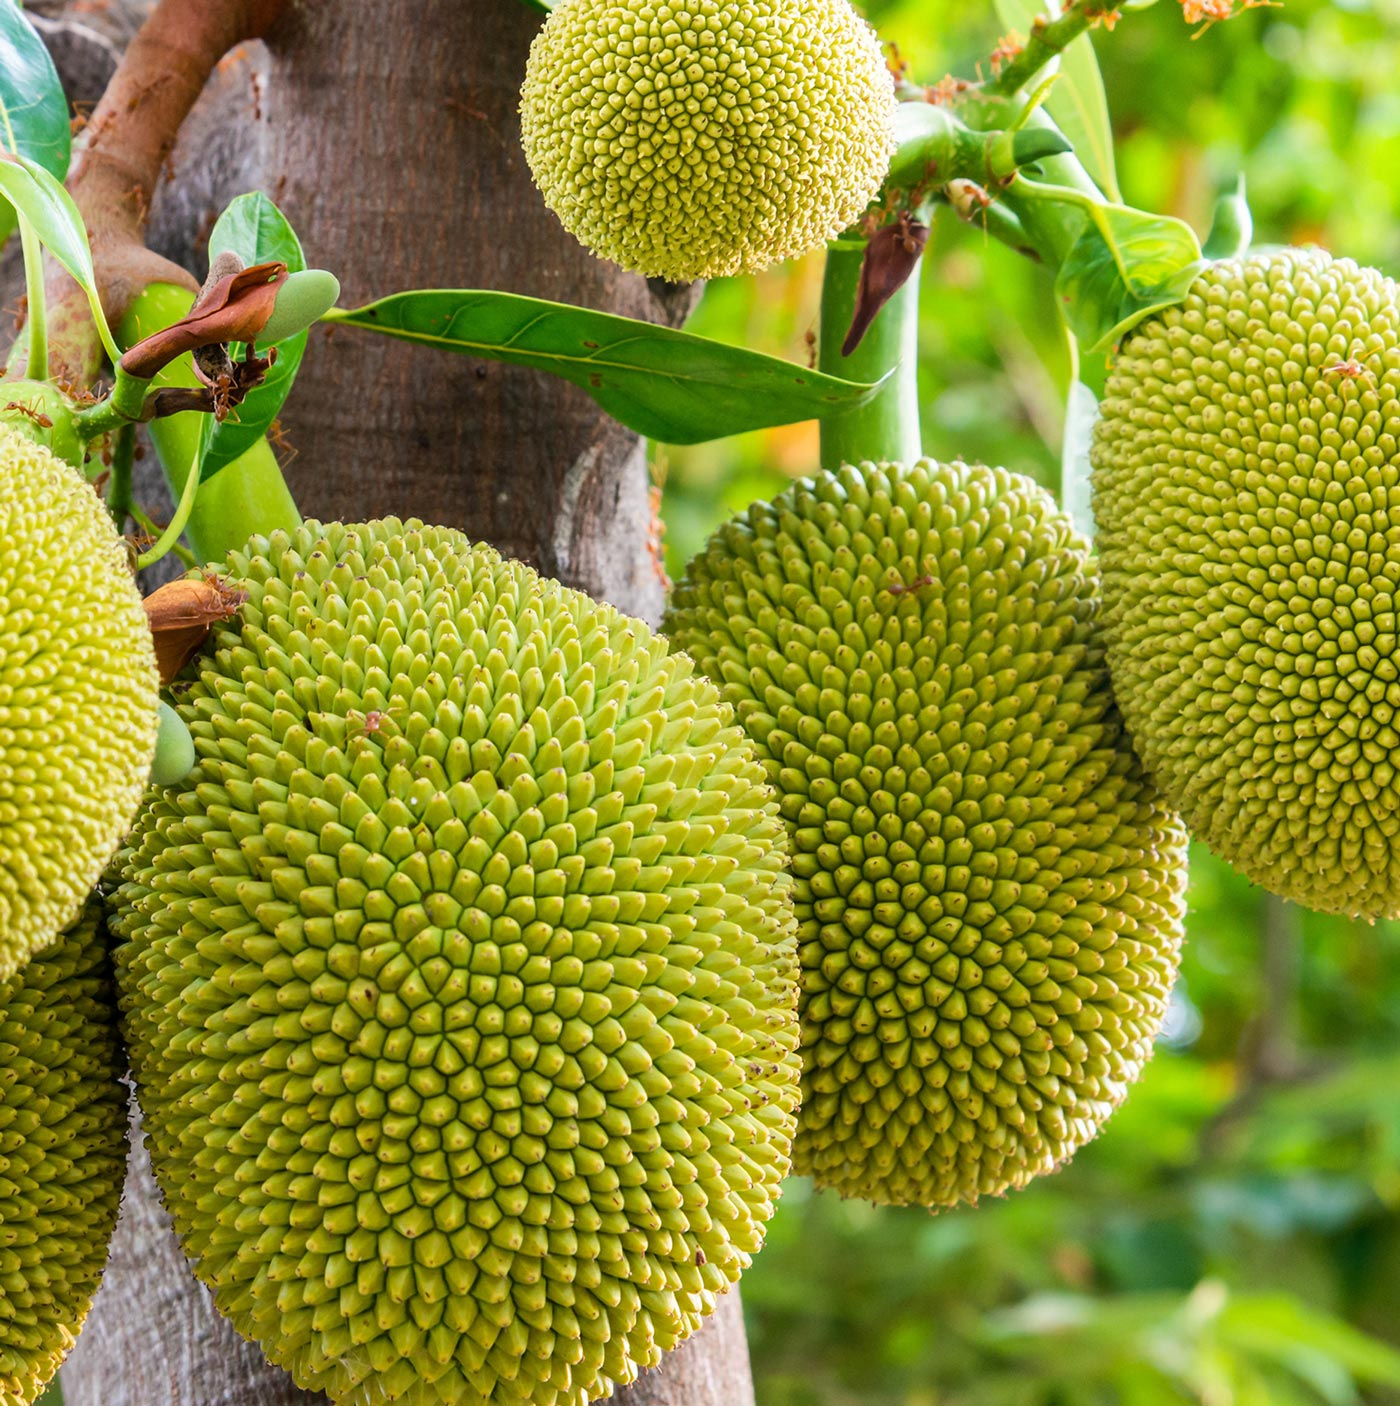 jacks jackfruit